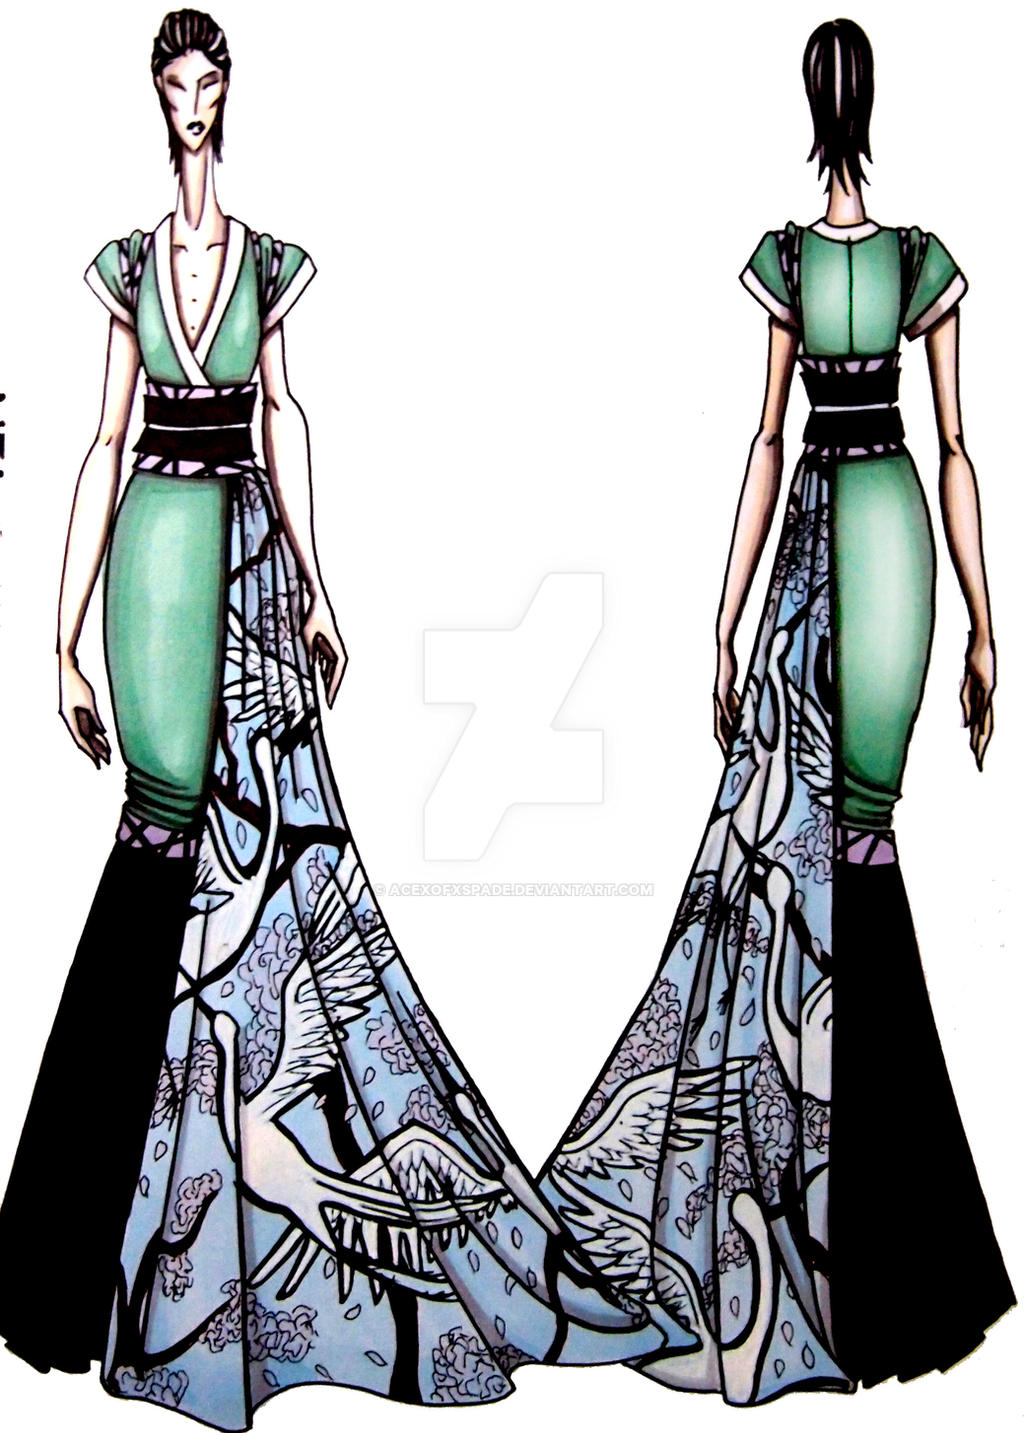 japanese inspired dress by acexofxspade on deviantart